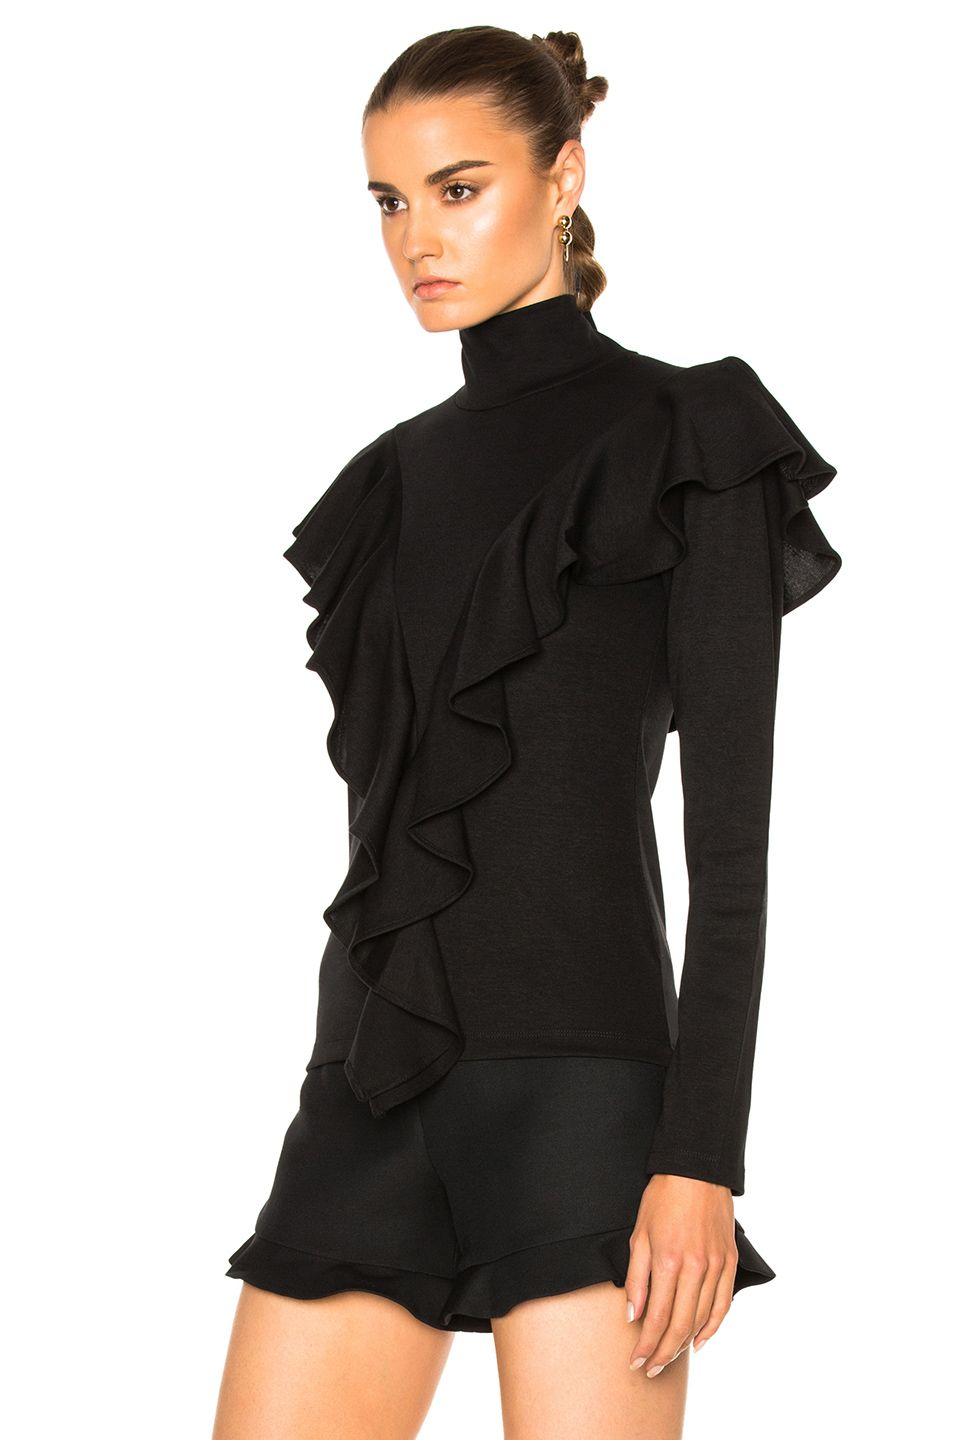 Image 2 of Rodebjer Jennifer Top in Black- just the shirt